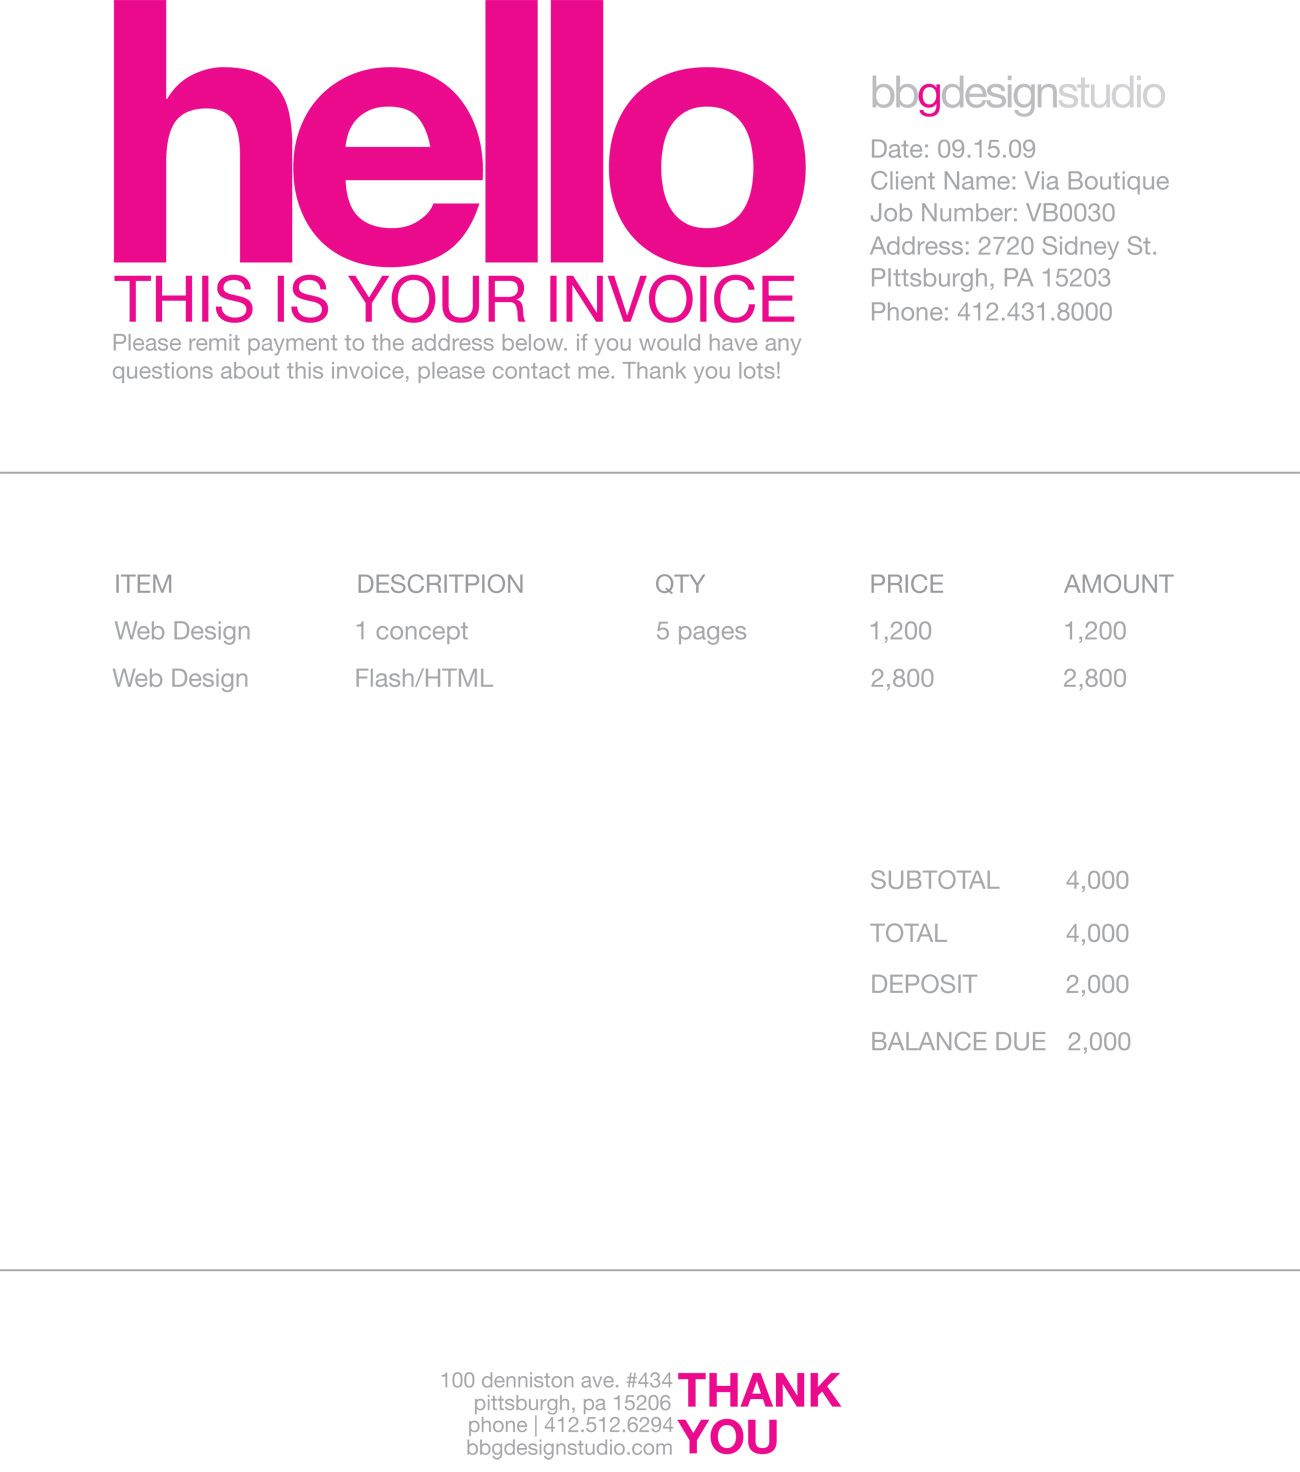 Shopdesignsus  Personable  Images About Invoice Design On Pinterest With Glamorous Sole Trader Invoices Besides Payment Against Proforma Invoice Furthermore Free Invoice Software For Small Business Download With Comely Tenant Invoice Also Where Can I Find Invoice Price Of A Car In Addition Invoice Not Paid What Can I Do And Hotel Invoice Sample As Well As Gst Tax Invoice Requirements Additionally Invoice Audit Services From Pinterestcom With Shopdesignsus  Glamorous  Images About Invoice Design On Pinterest With Comely Sole Trader Invoices Besides Payment Against Proforma Invoice Furthermore Free Invoice Software For Small Business Download And Personable Tenant Invoice Also Where Can I Find Invoice Price Of A Car In Addition Invoice Not Paid What Can I Do From Pinterestcom